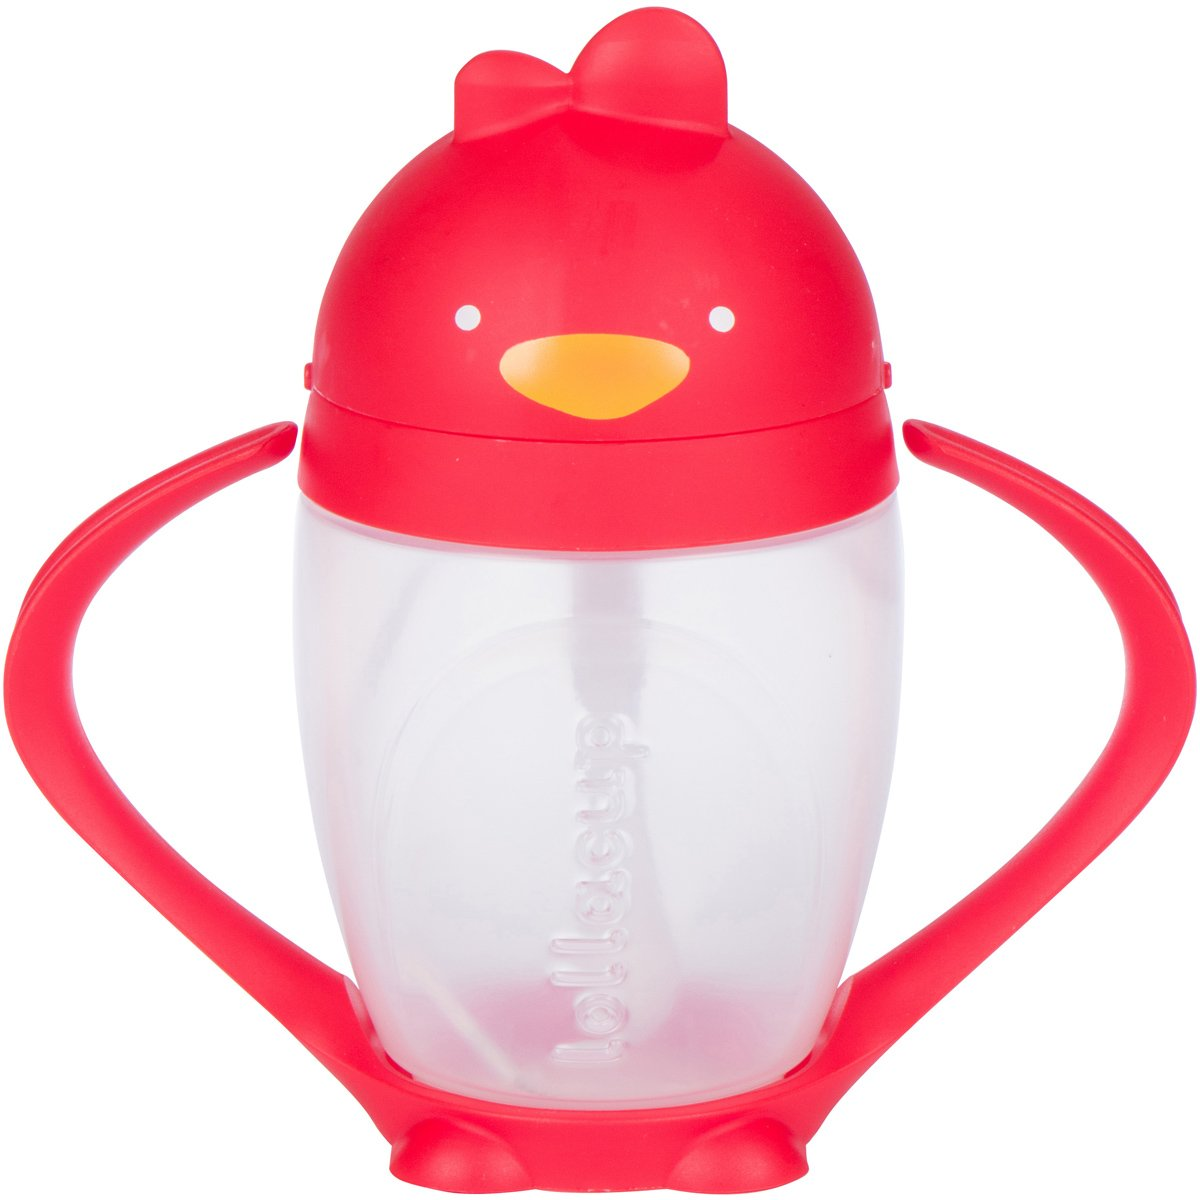 Lollaland Lollacup, Red   10 oz Straw Sippy Cup with Weighted Straw Made in USA